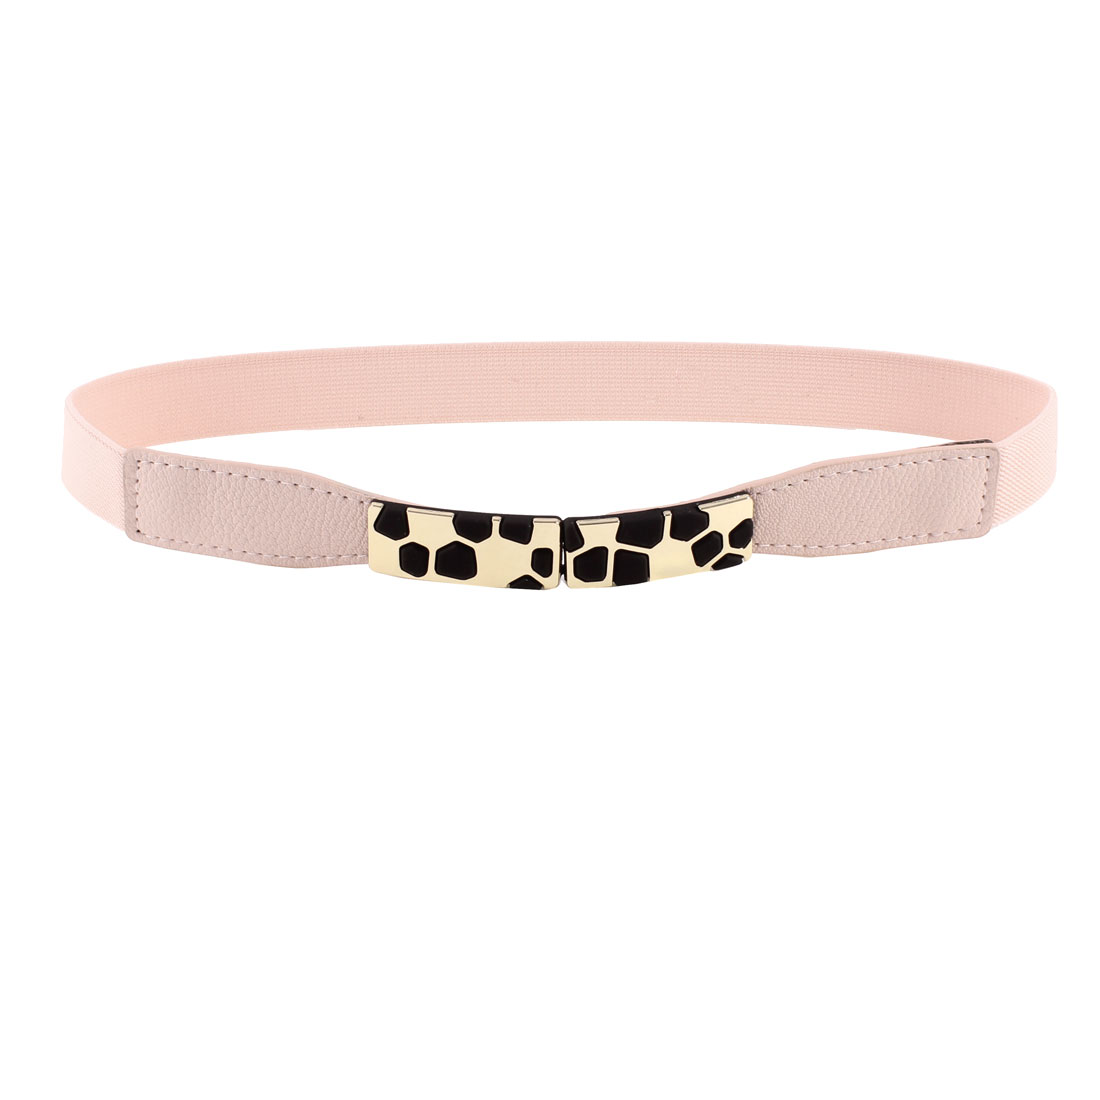 Block Design Metal Interlocking Buckle Stretchy Waist Belt Pink for Ladies